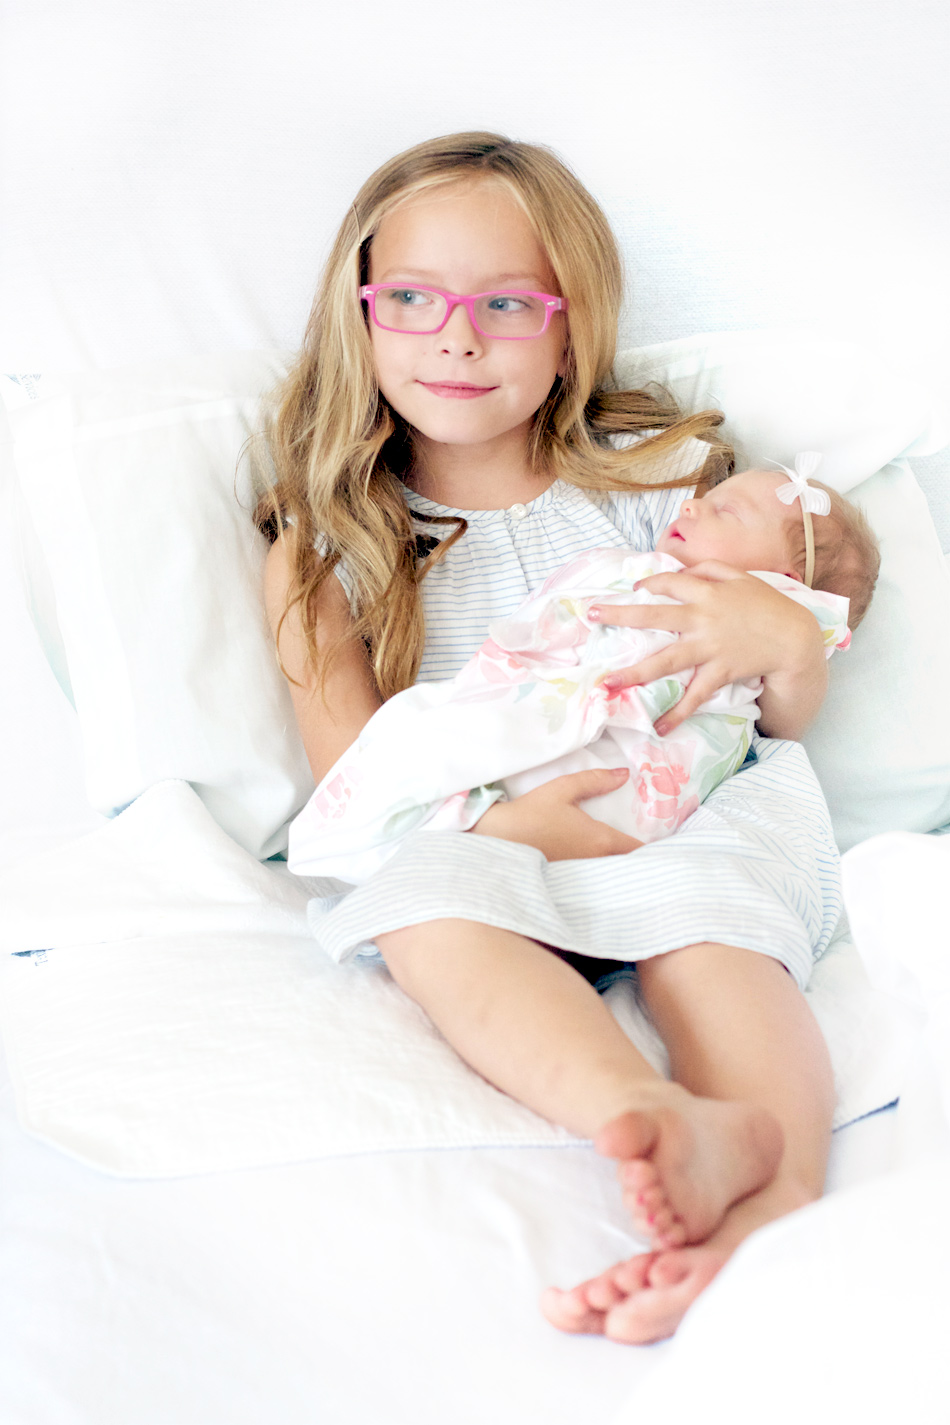 adorable-sister-sibling-photo-kid-glasses-baby-girl-hospital